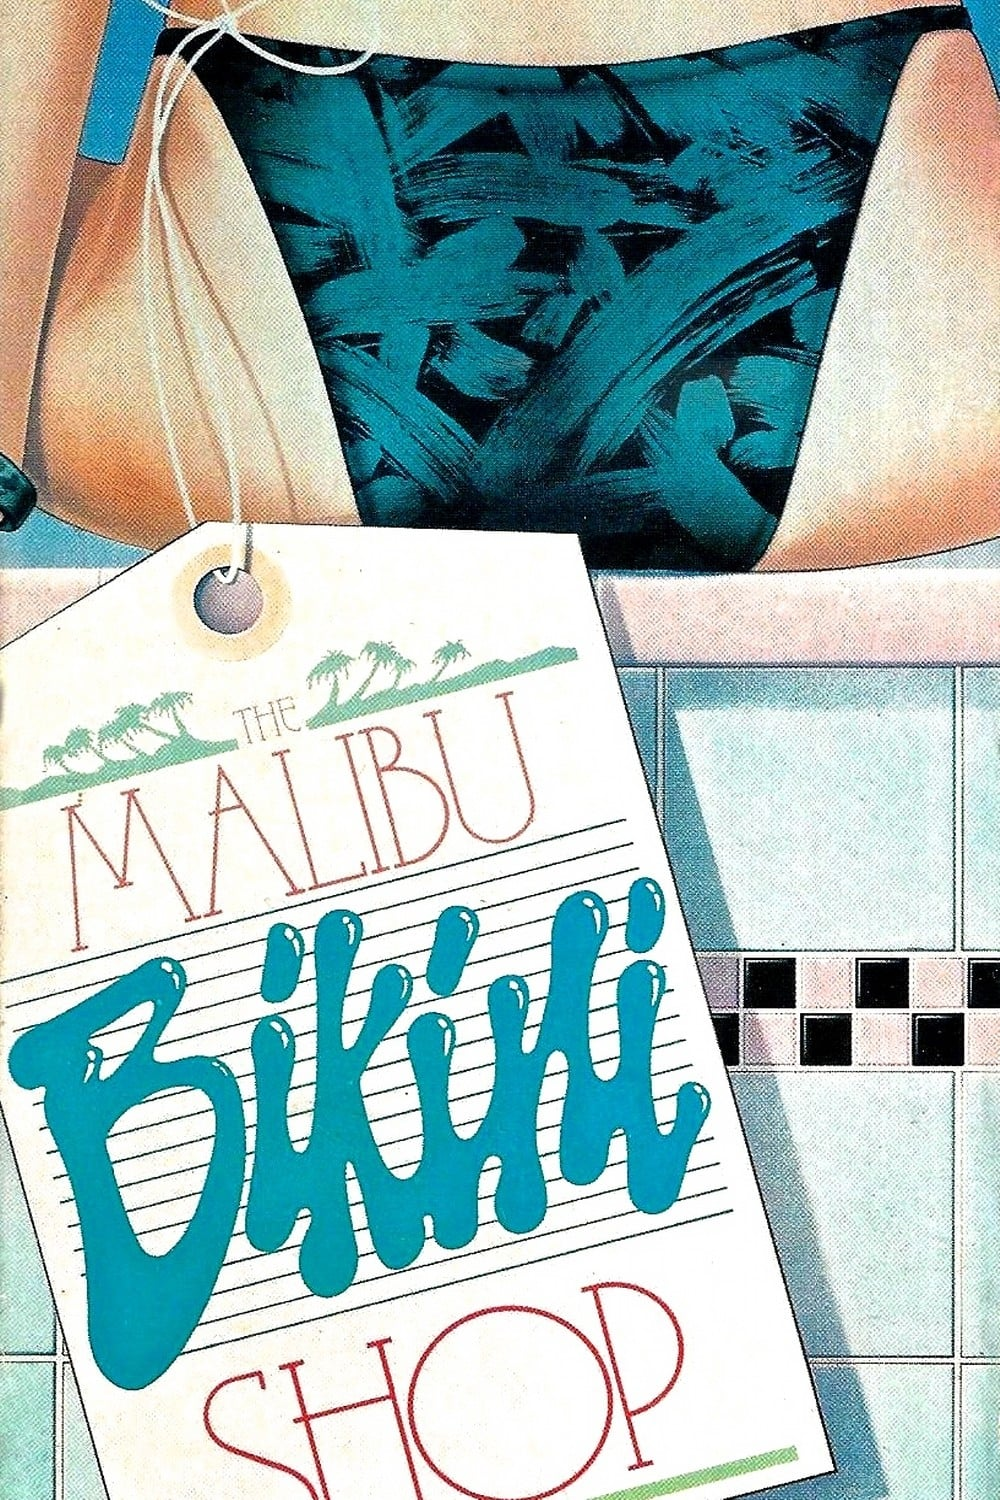 The Malibu Bikini Shop (1986)